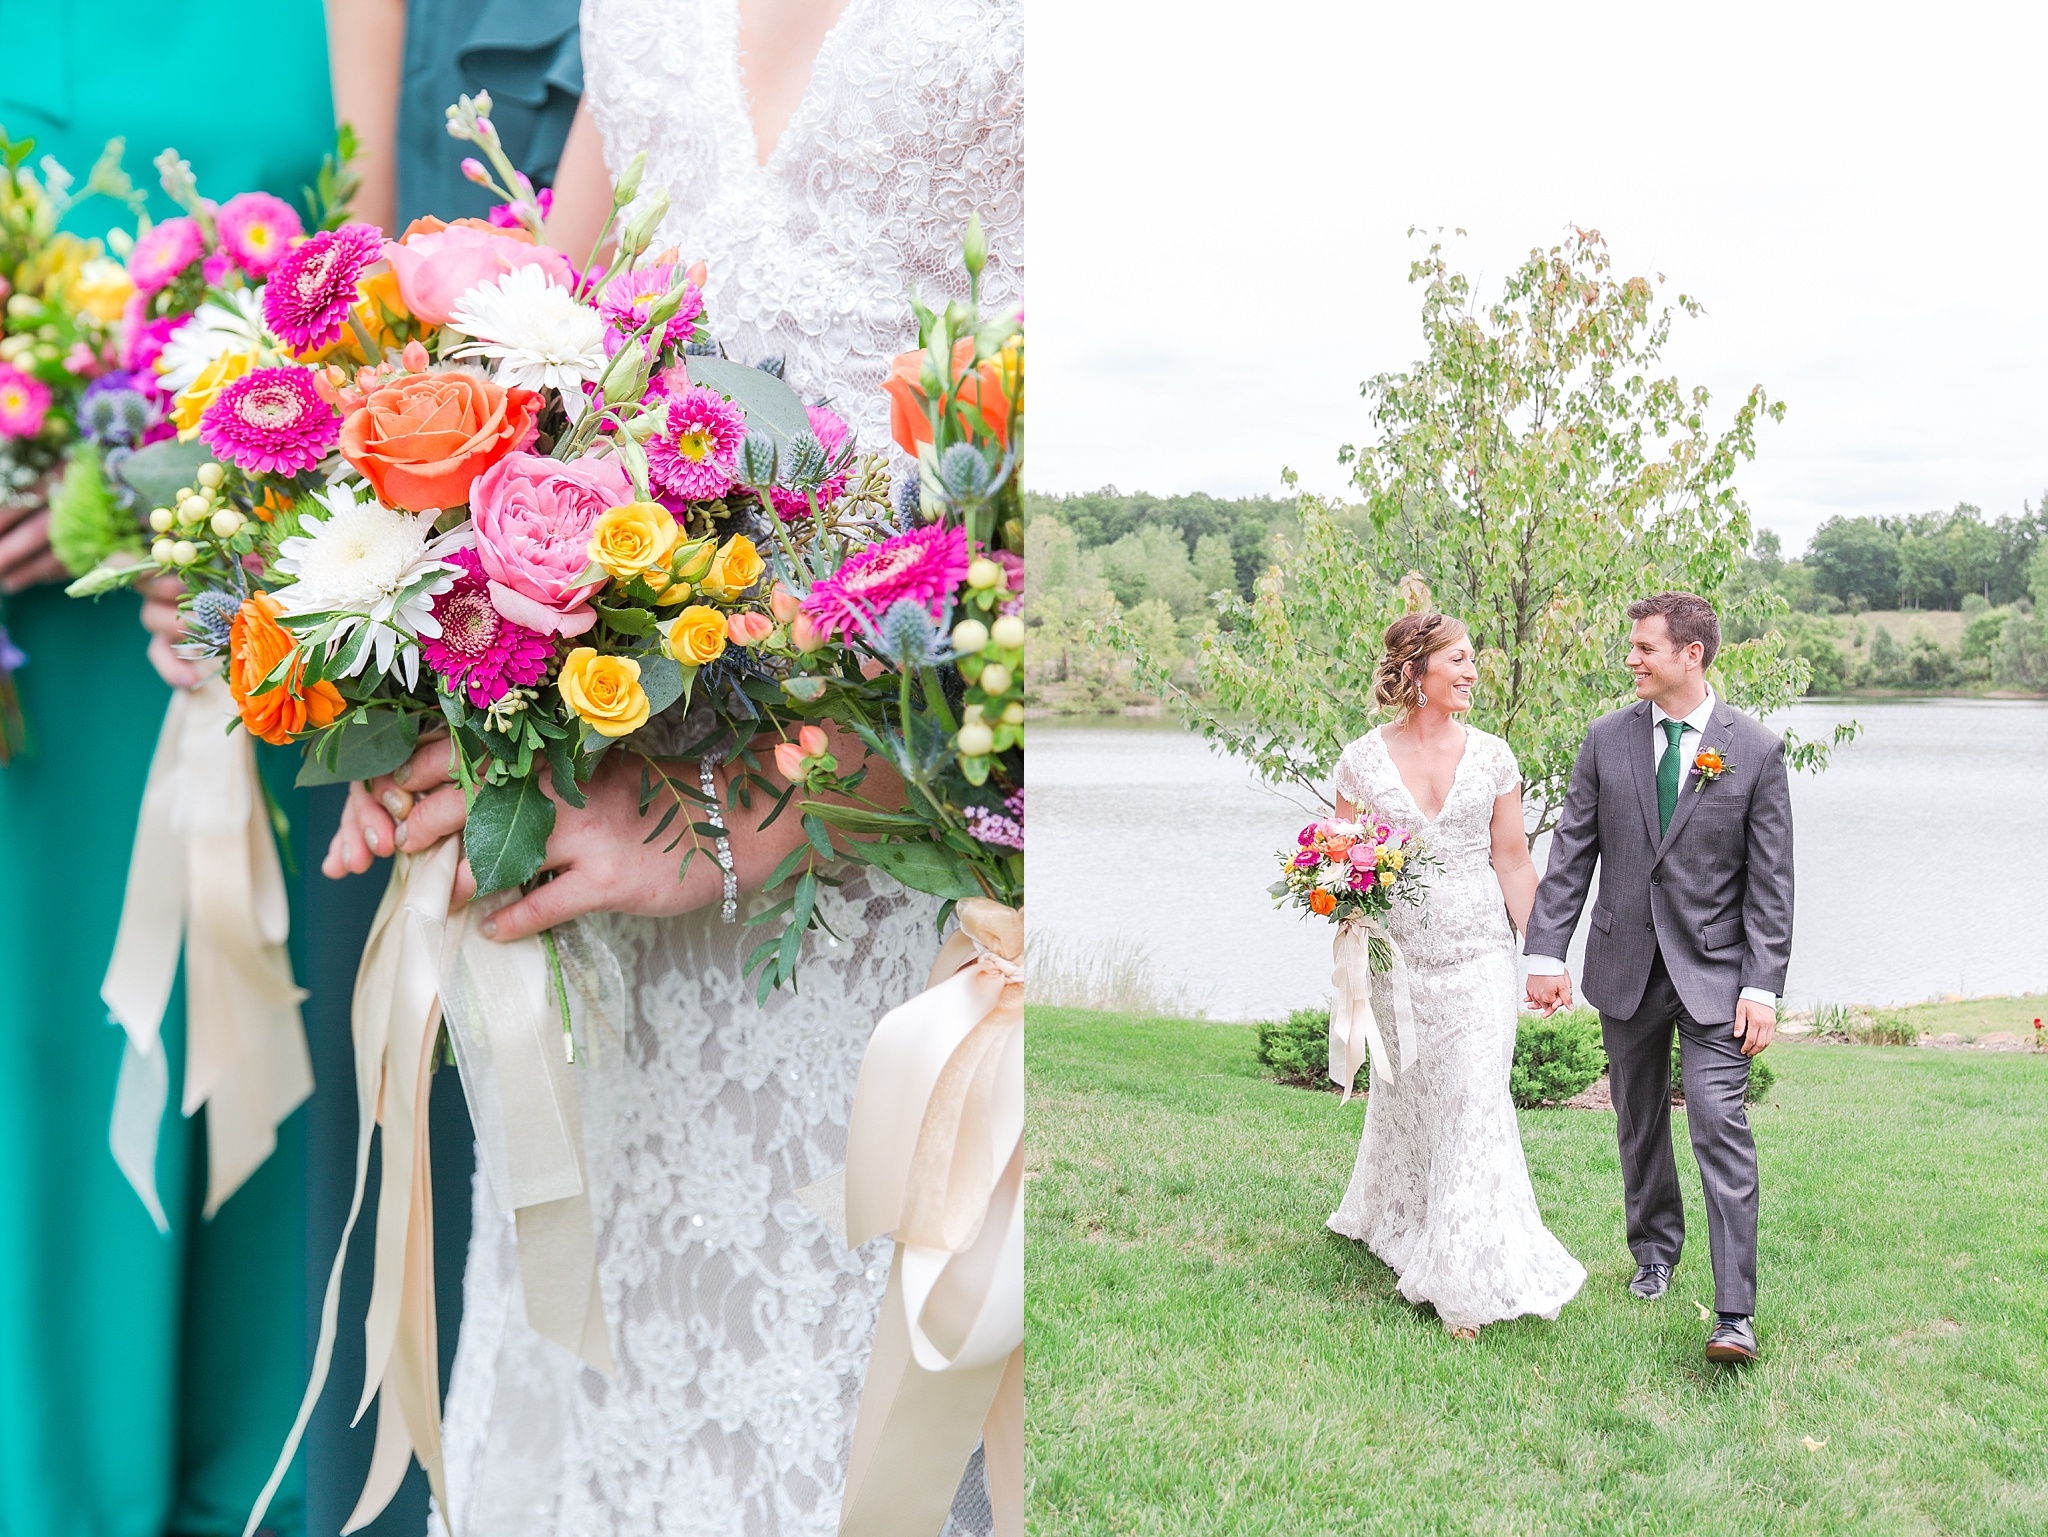 romantic-artful-candid-wedding-photos-in-detroit-lansing-ann-arbor-northern-michigan-and-chicago-by-courtney-carolyn-photography_0032.jpg